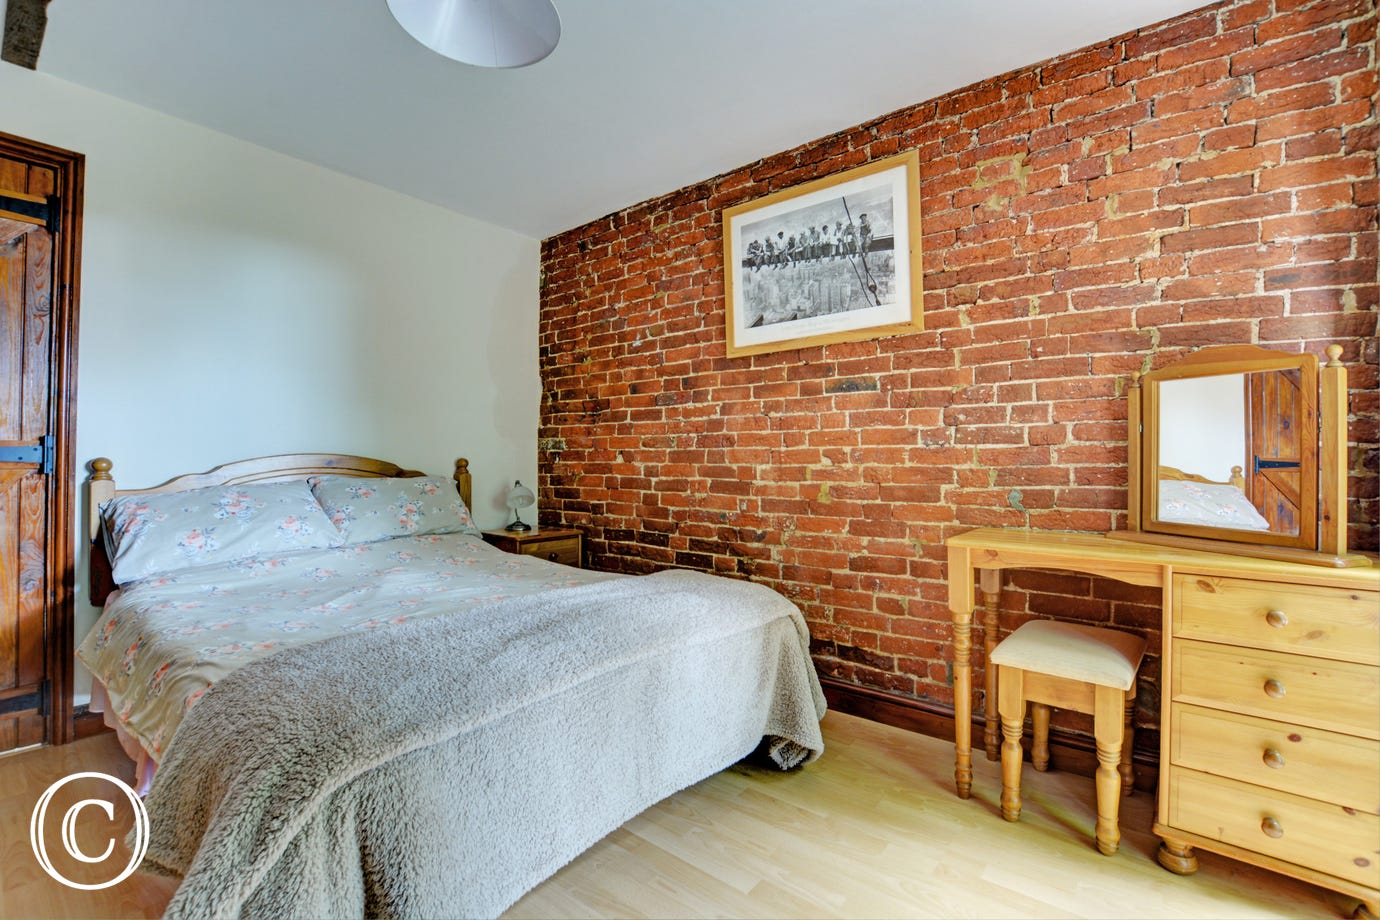 Characterful double bedroom with a double bed and exposed brickwork